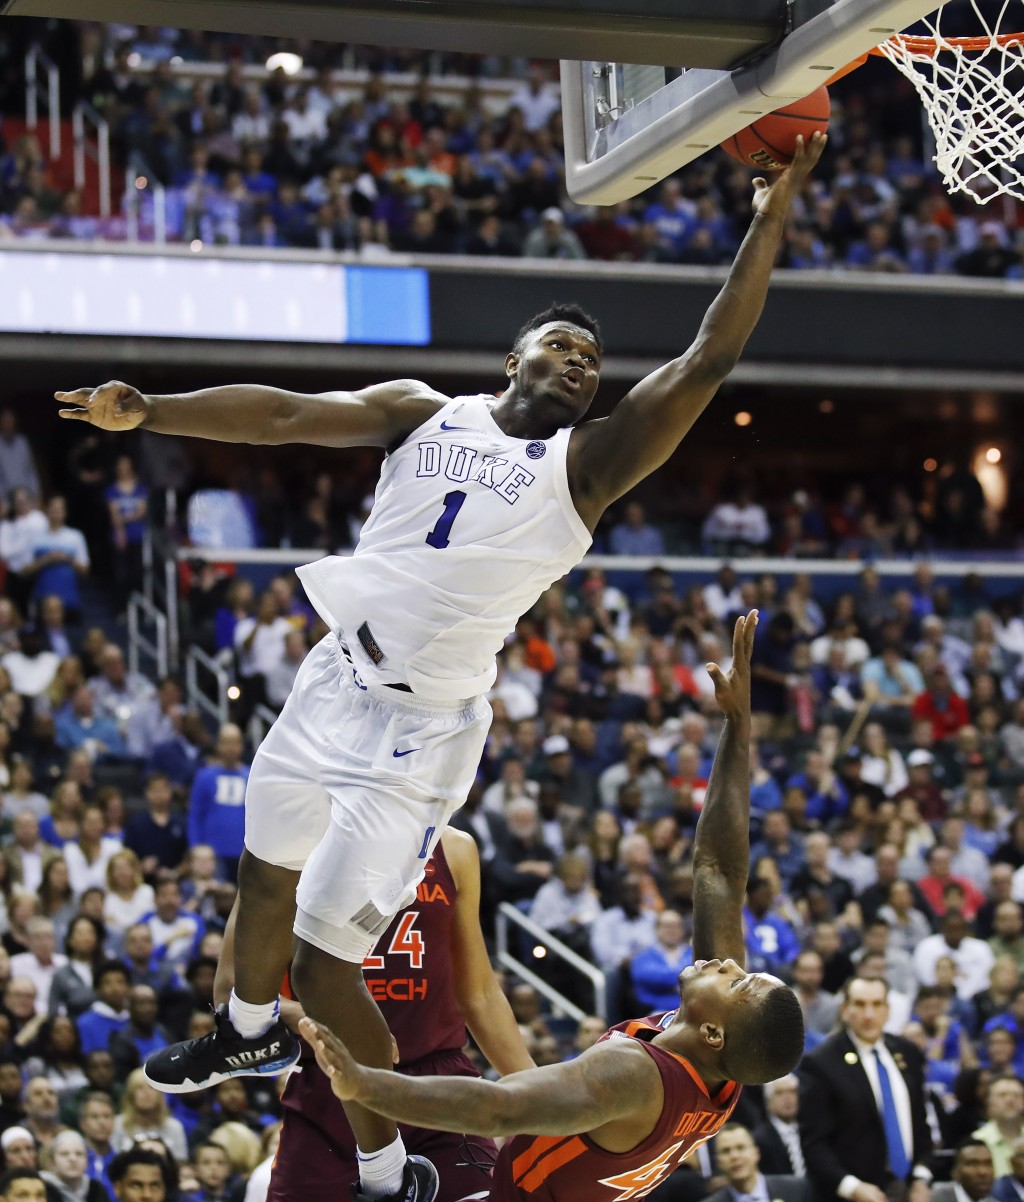 FILE - In this March 29, 2019, file photo, Duke forward Zion Williamson (1) drives to the basket to score over Virginia Tech's guard Ty Outlaw (42) du...